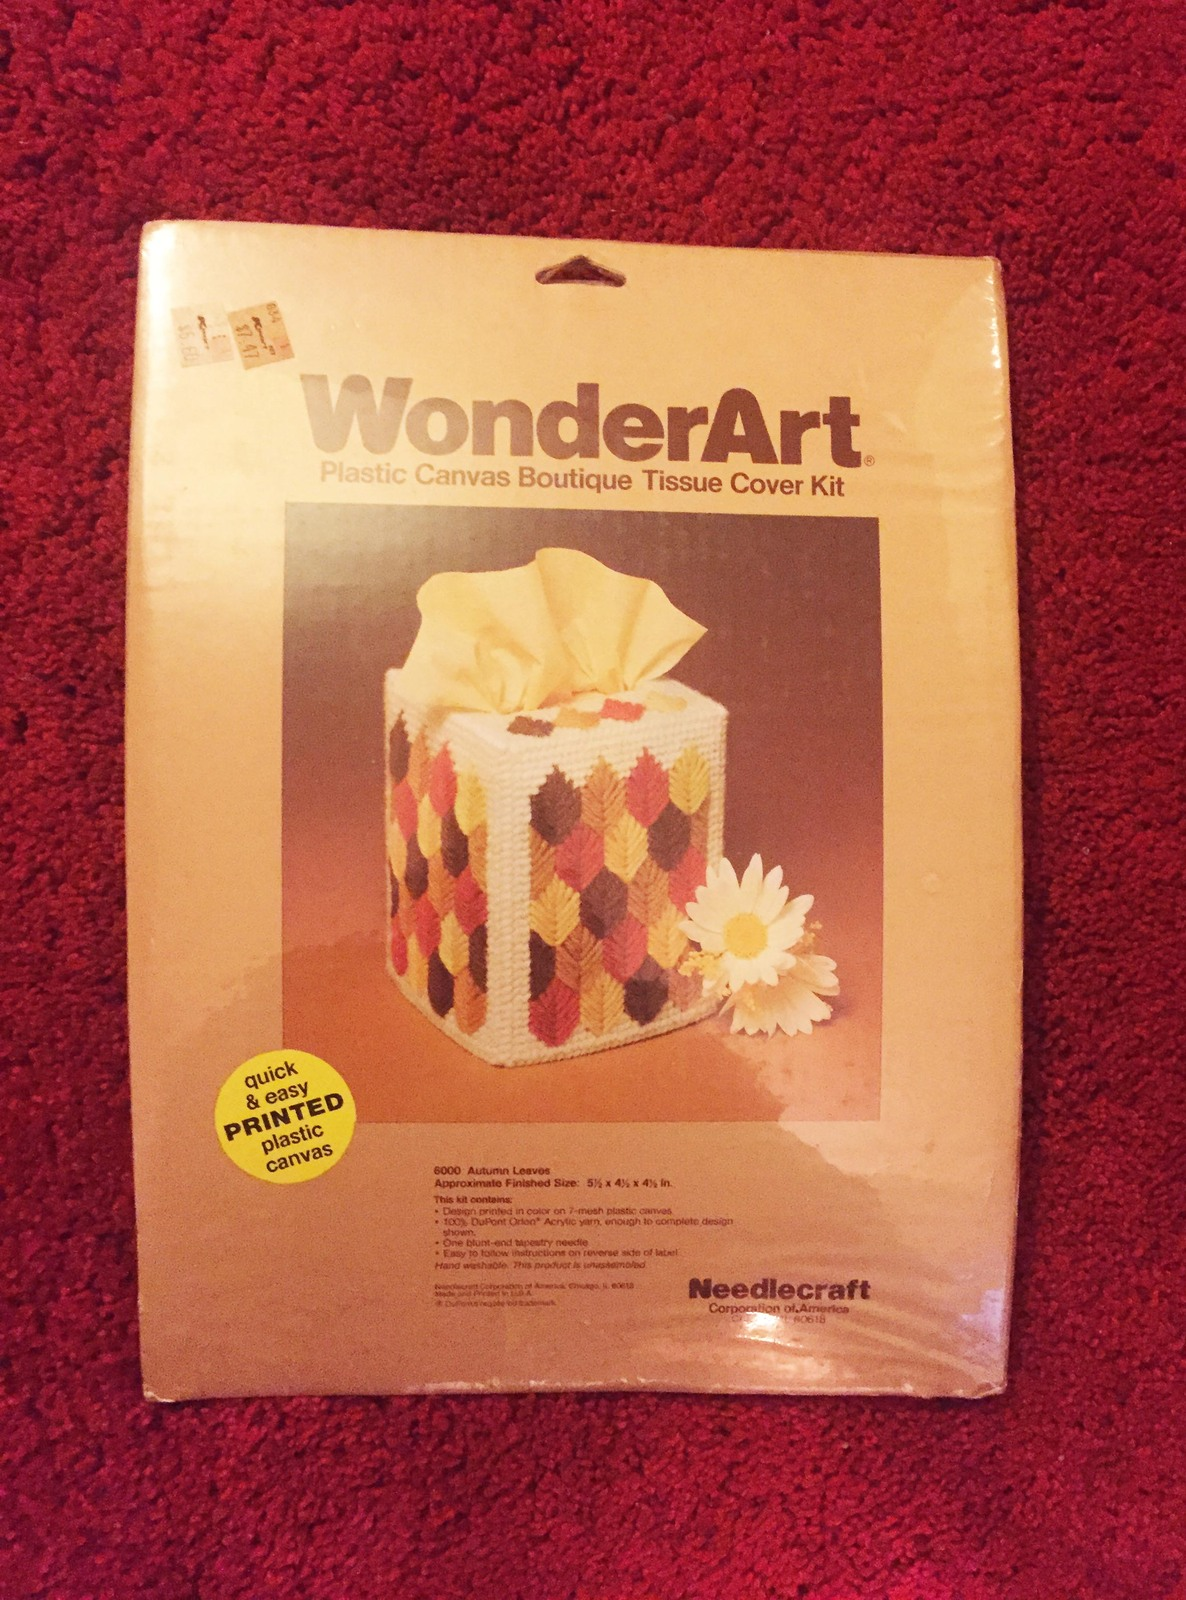 Vintage 70s WonderArt Plastic Canvas Tissue Cover Kit #6000 - by Needlecraft